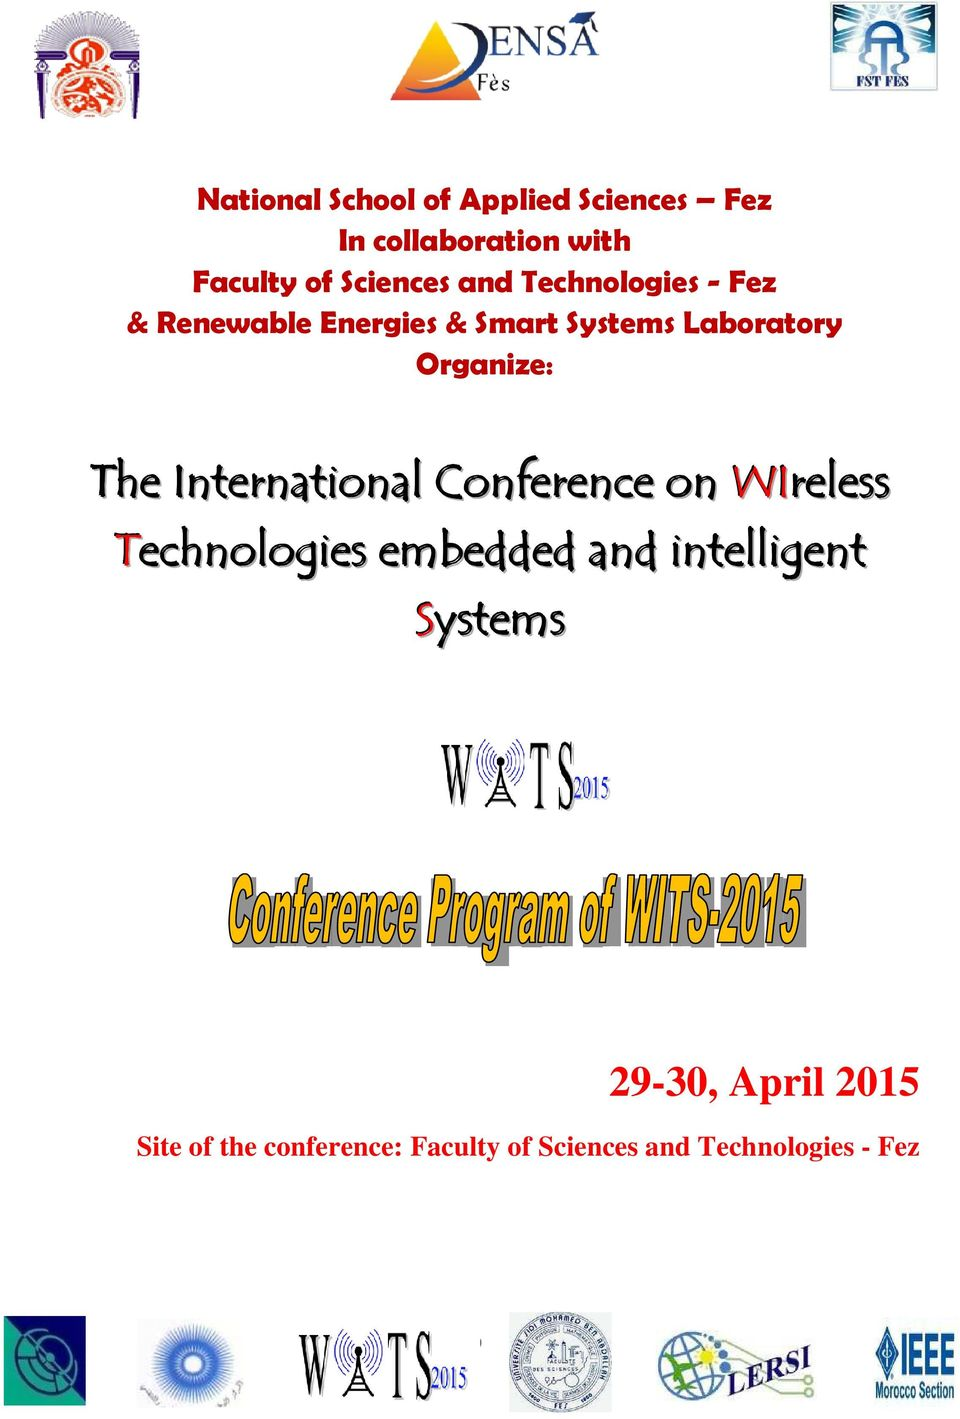 The International Conference on WIreless Technologies embedded and intelligent